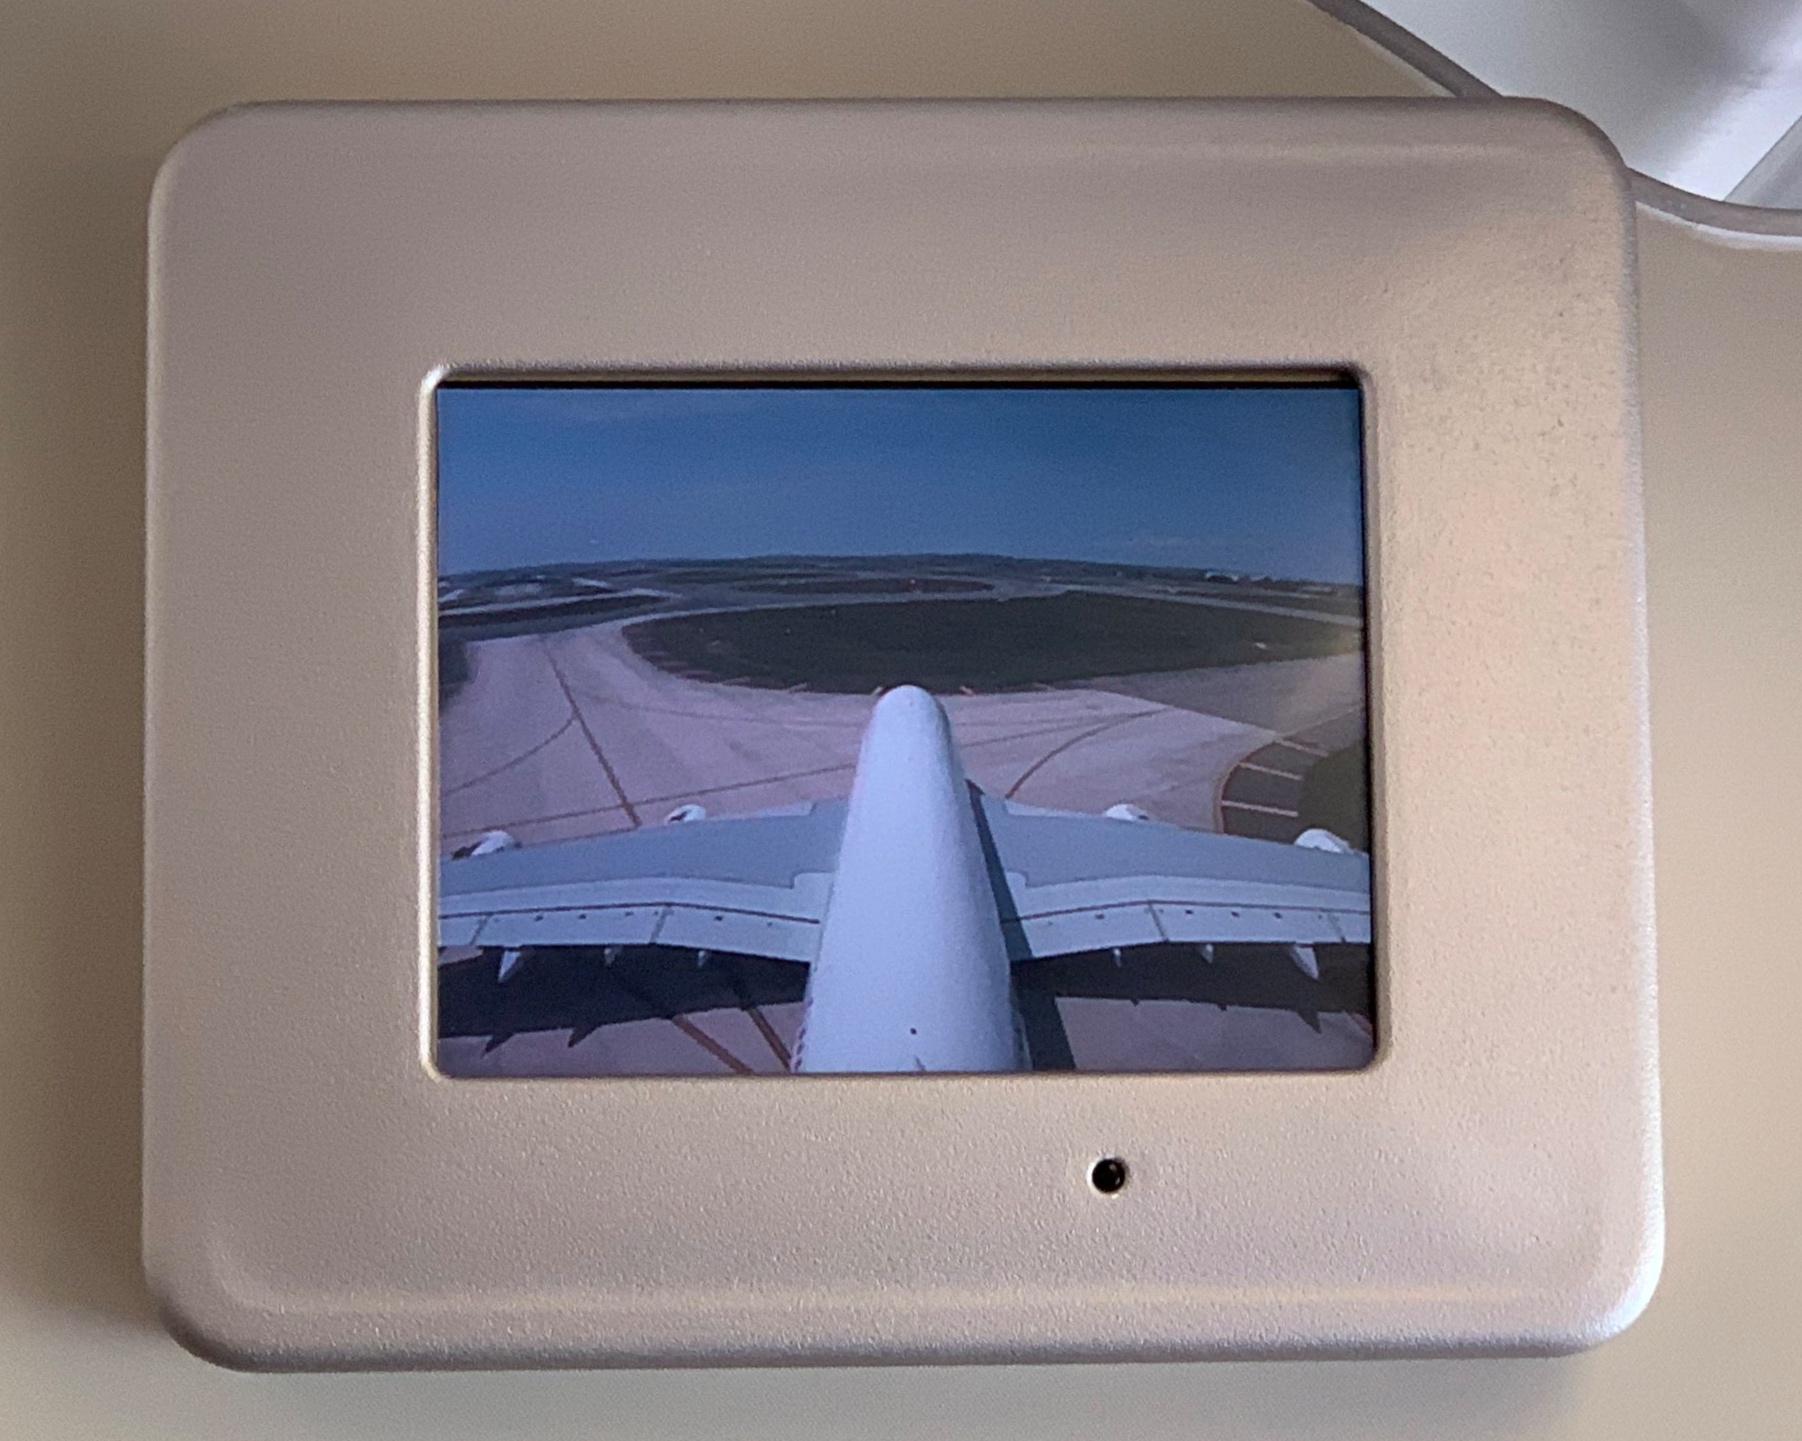 The view from the tail camera.